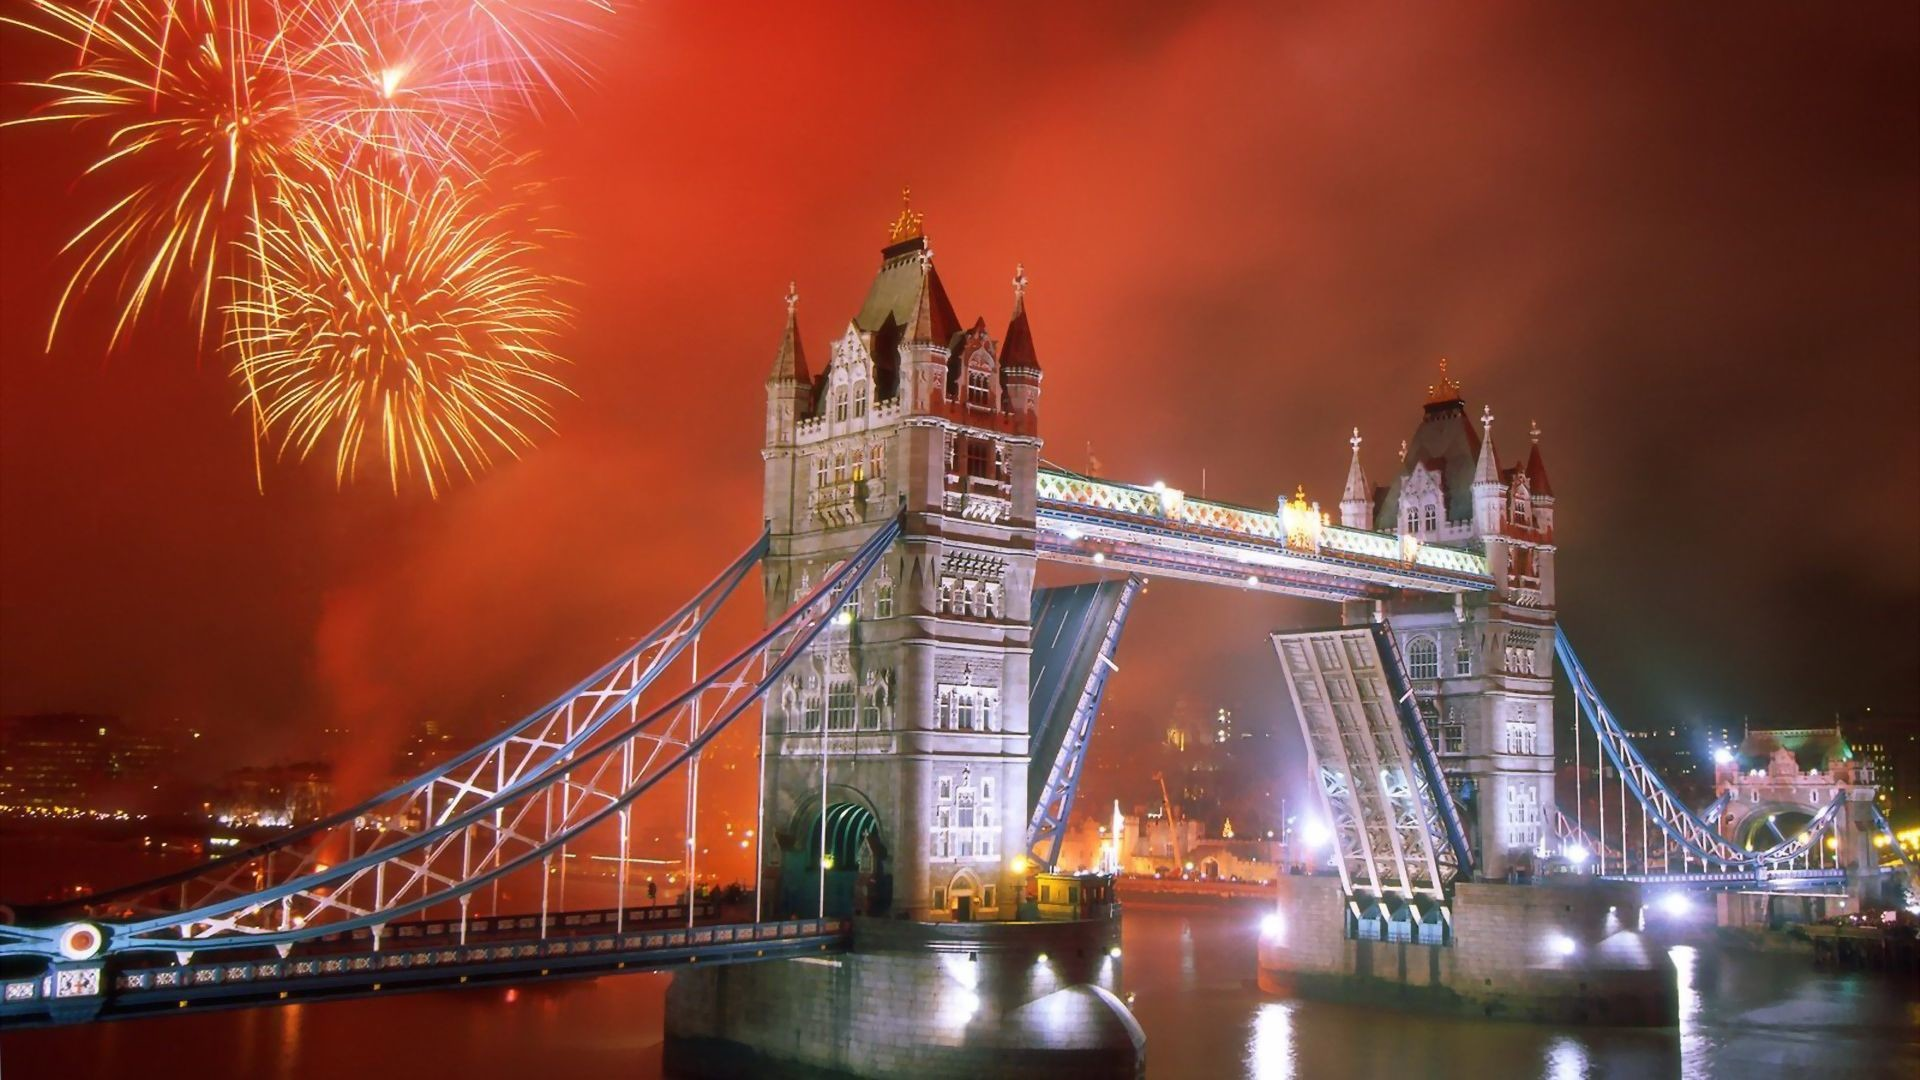 1920x1080 Tower Bridge Fireworks 4th of July HD Wallpaper. « »